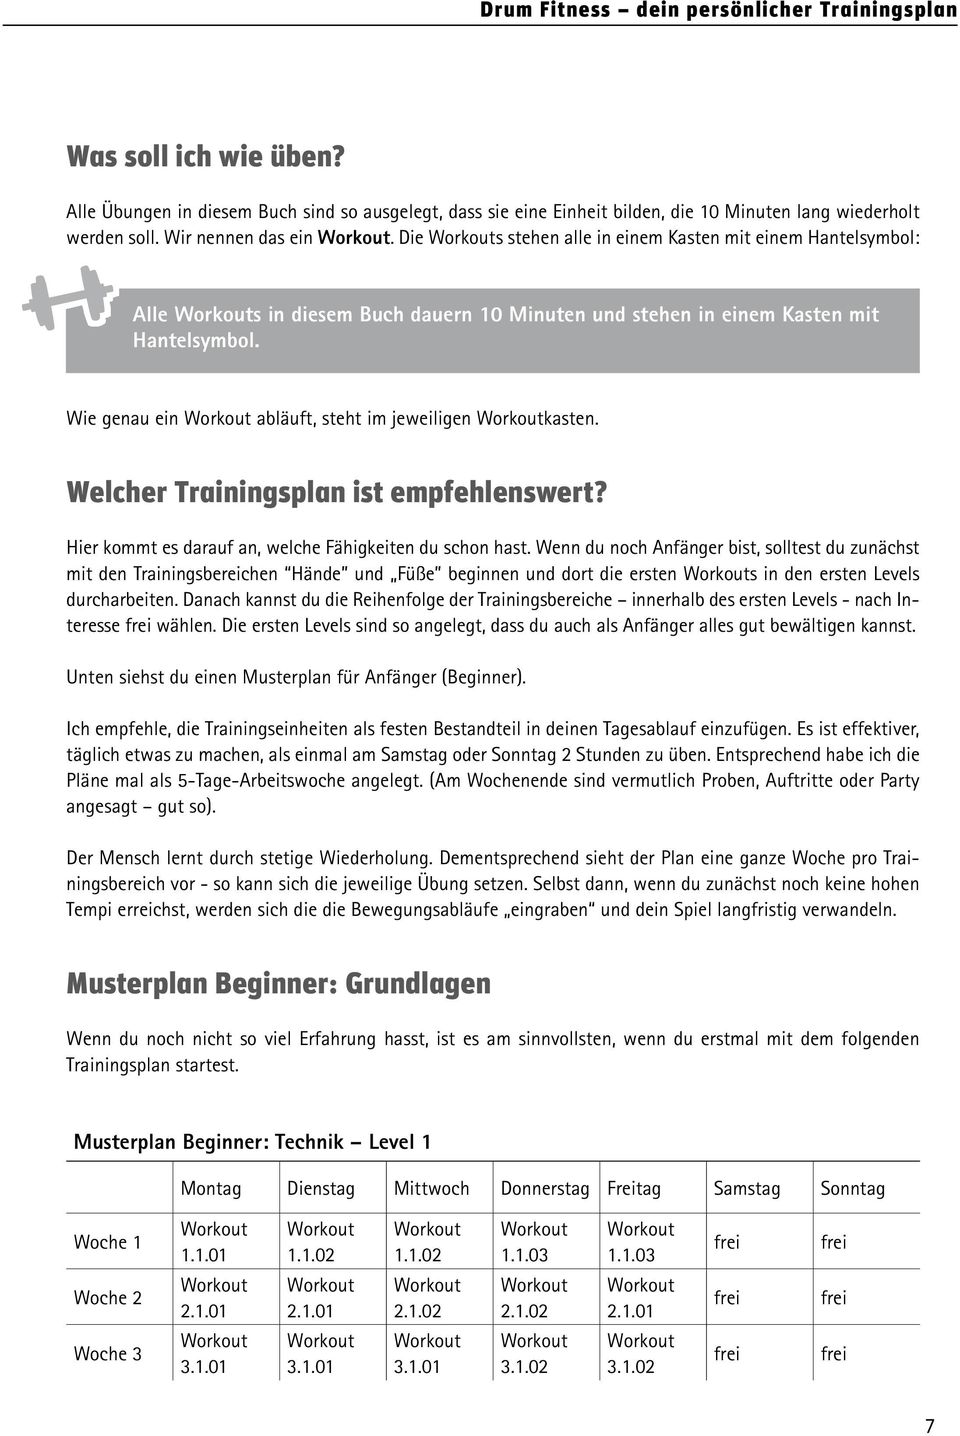 Wunderbar Probe Trainingsplan Vorlage Bilder - Entry Level Resume ...